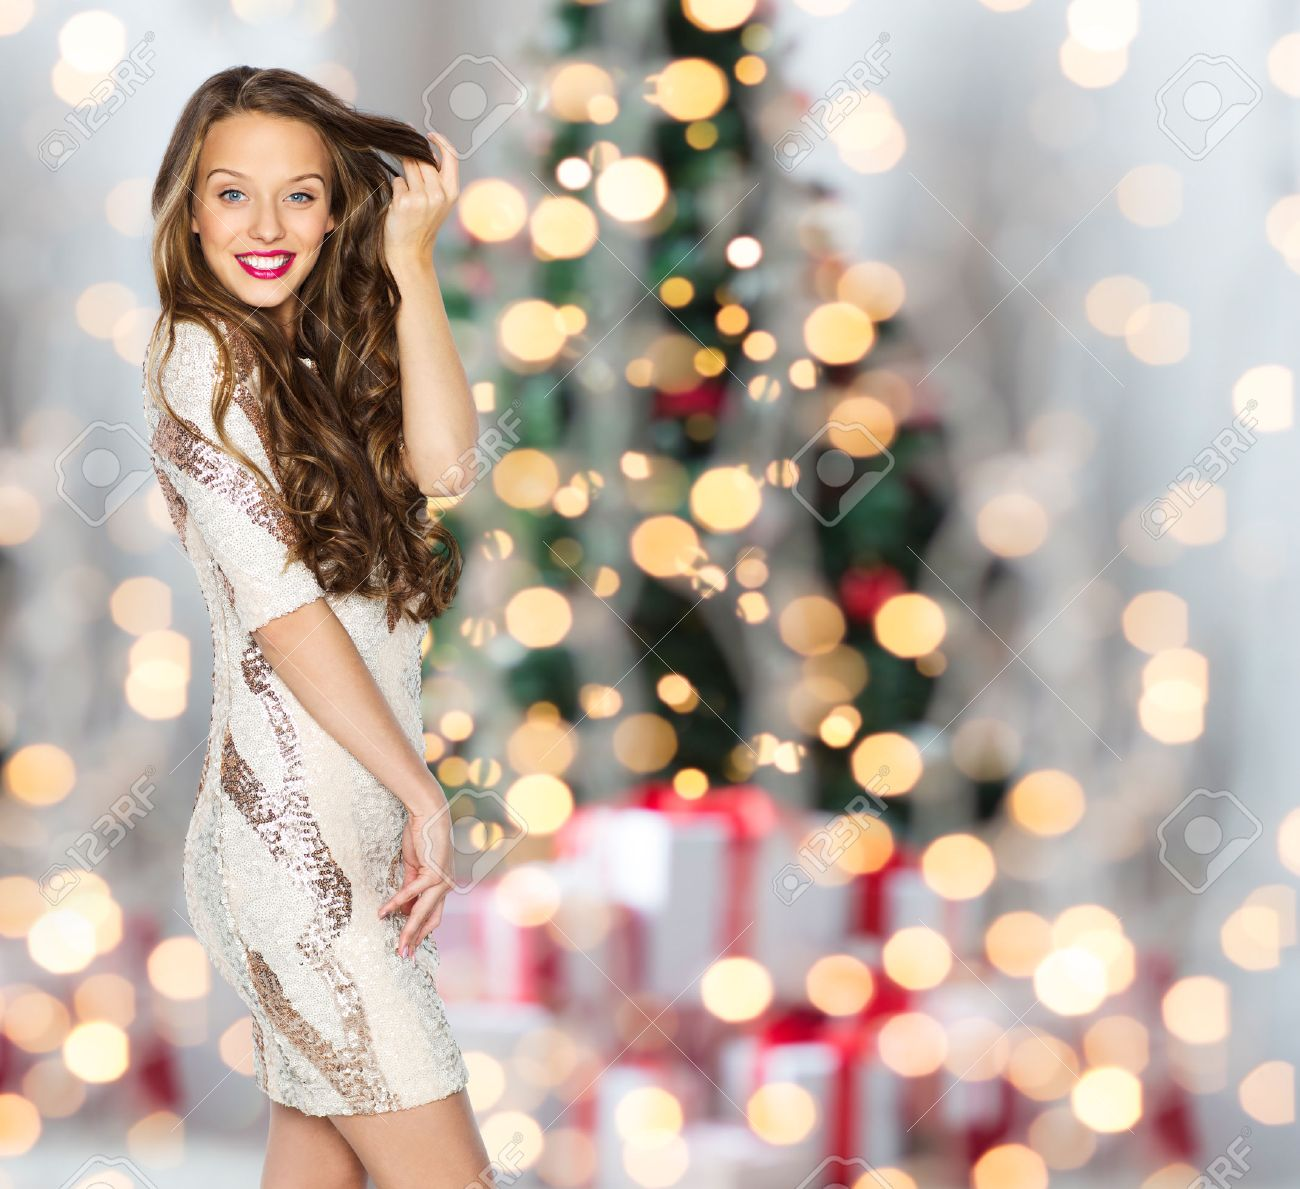 people, holidays, hairstyle and fashion concept - happy young woman or teen girl in fancy dress with sequins touching long wavy hair over christmas tree lights background - 51225833